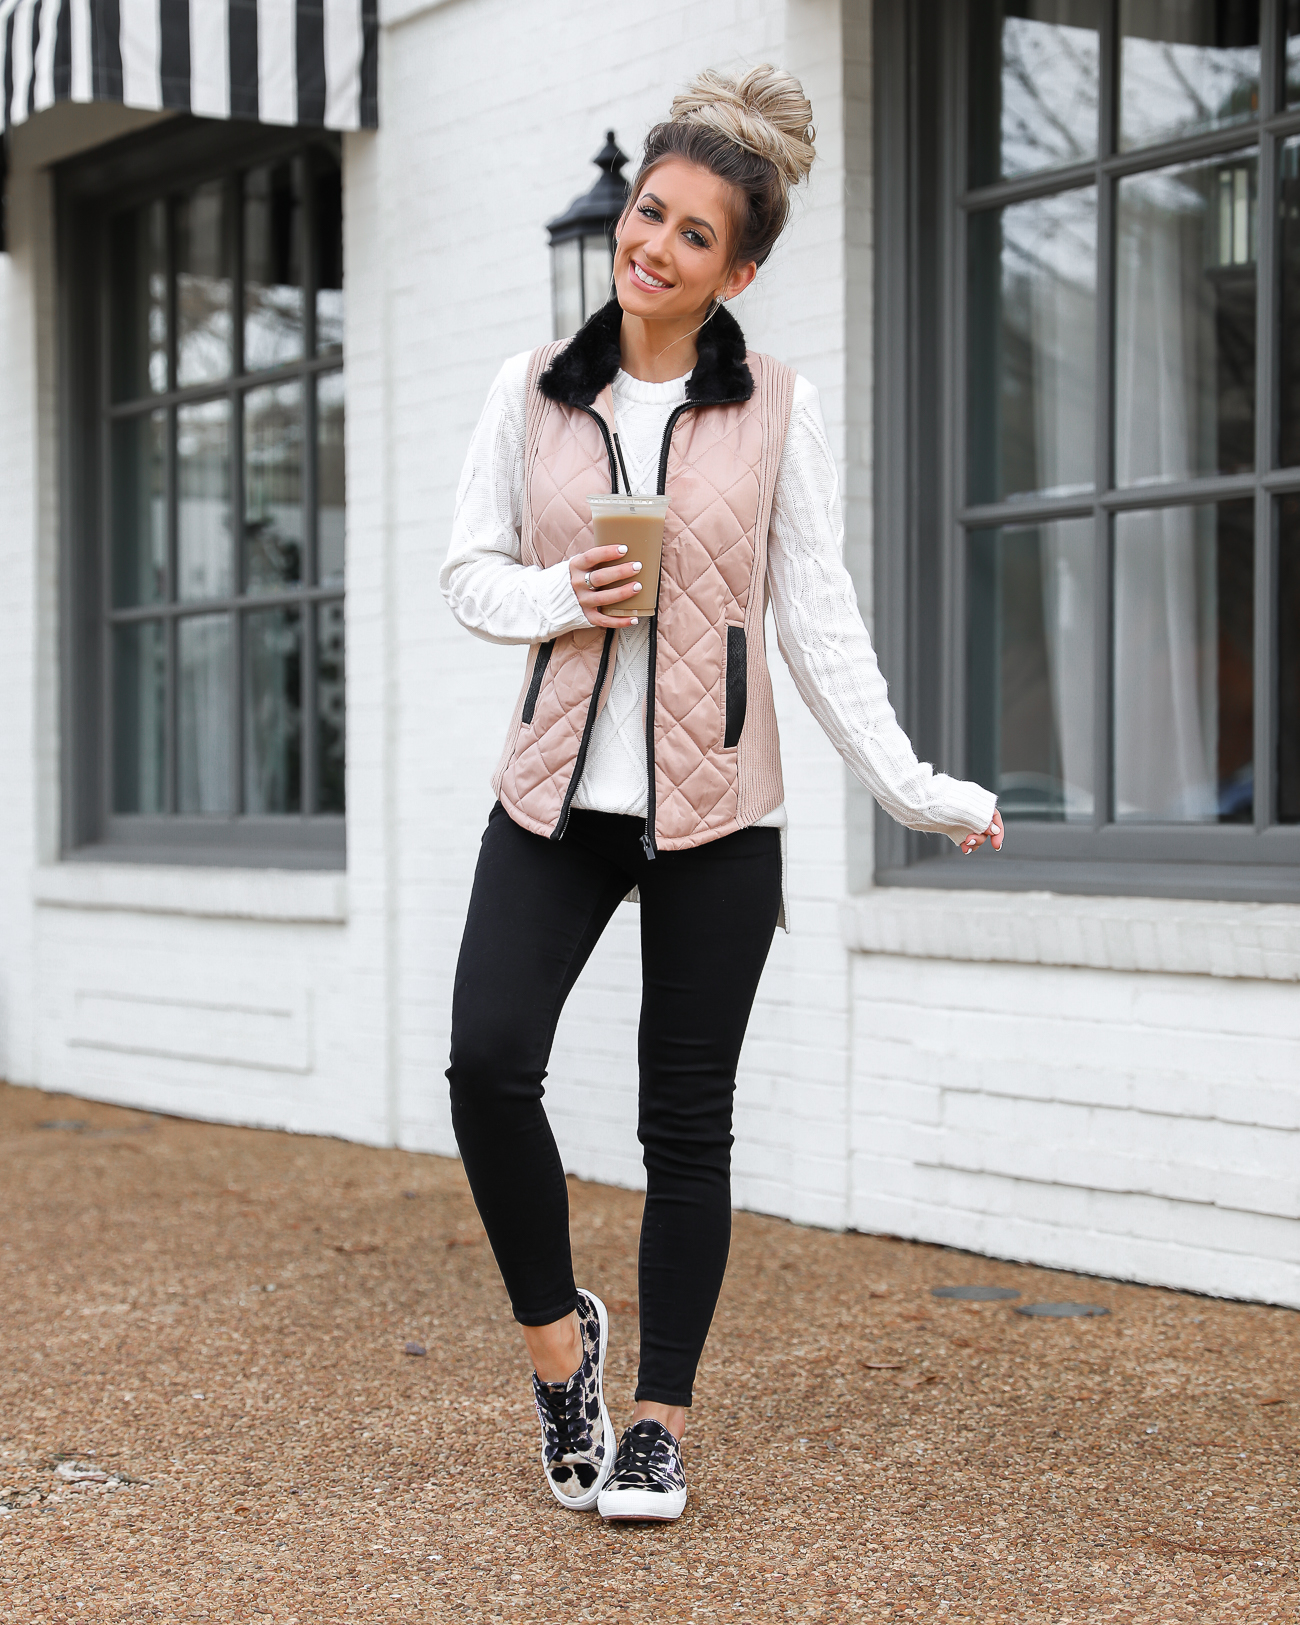 Walmart Tan and Black Quilted Vest Superga leopard velvet sneakers Black skinny jeans White knit tunic sweater Lord & Taylor Laura Beverlin